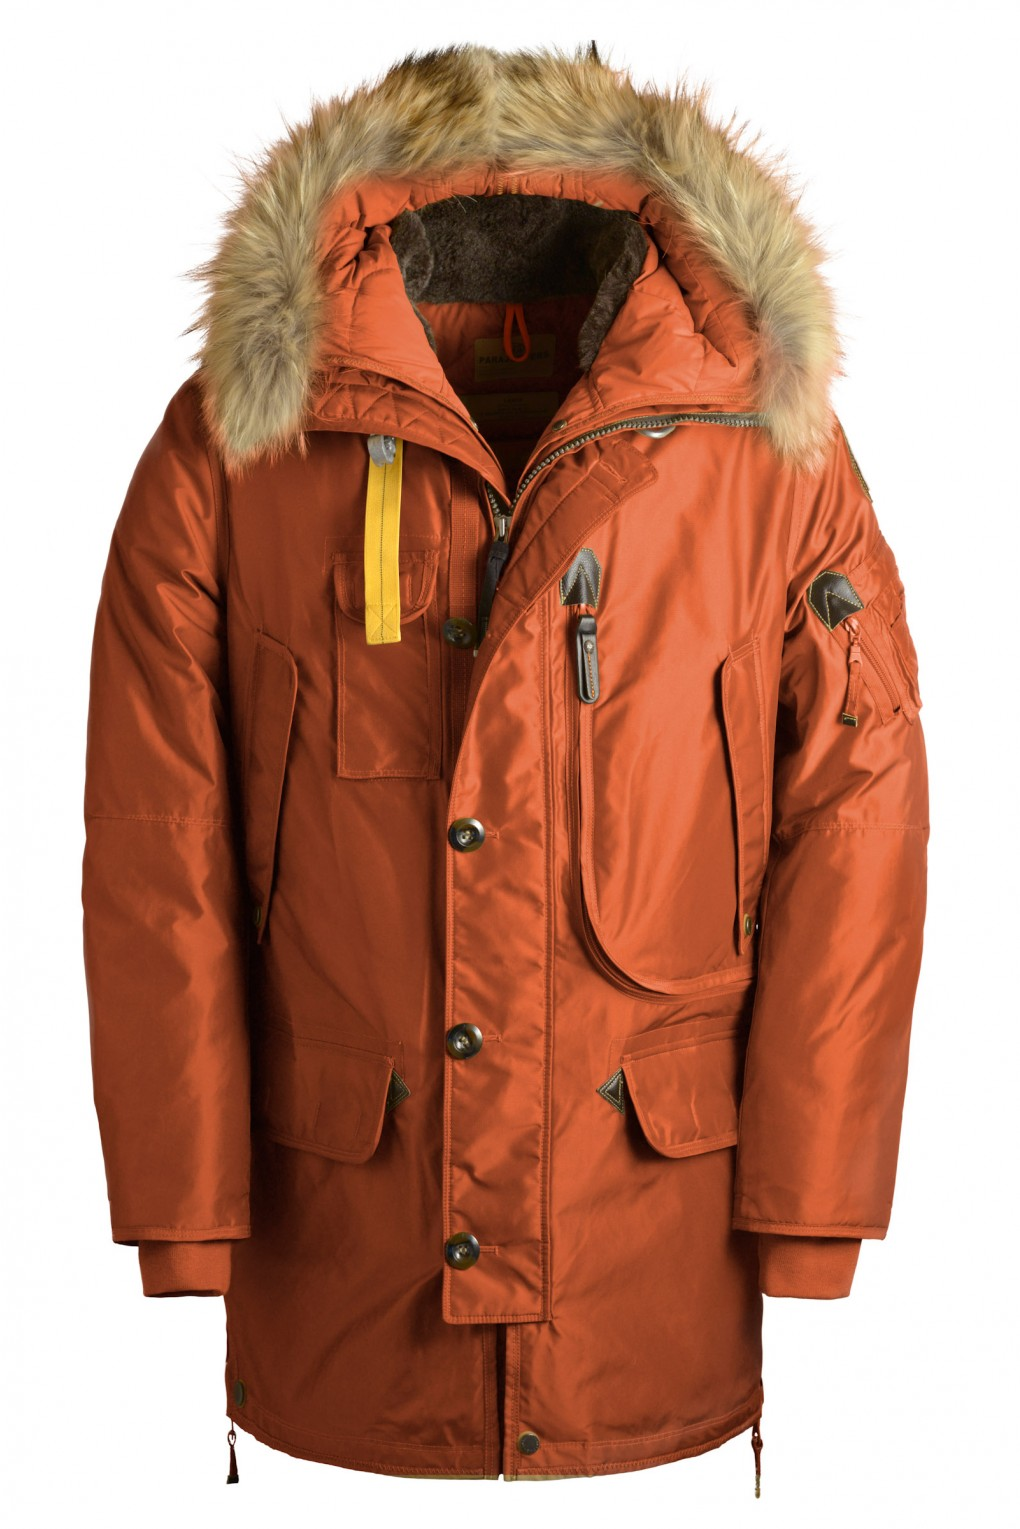 parajumpers KODIAK man outerwear Rust